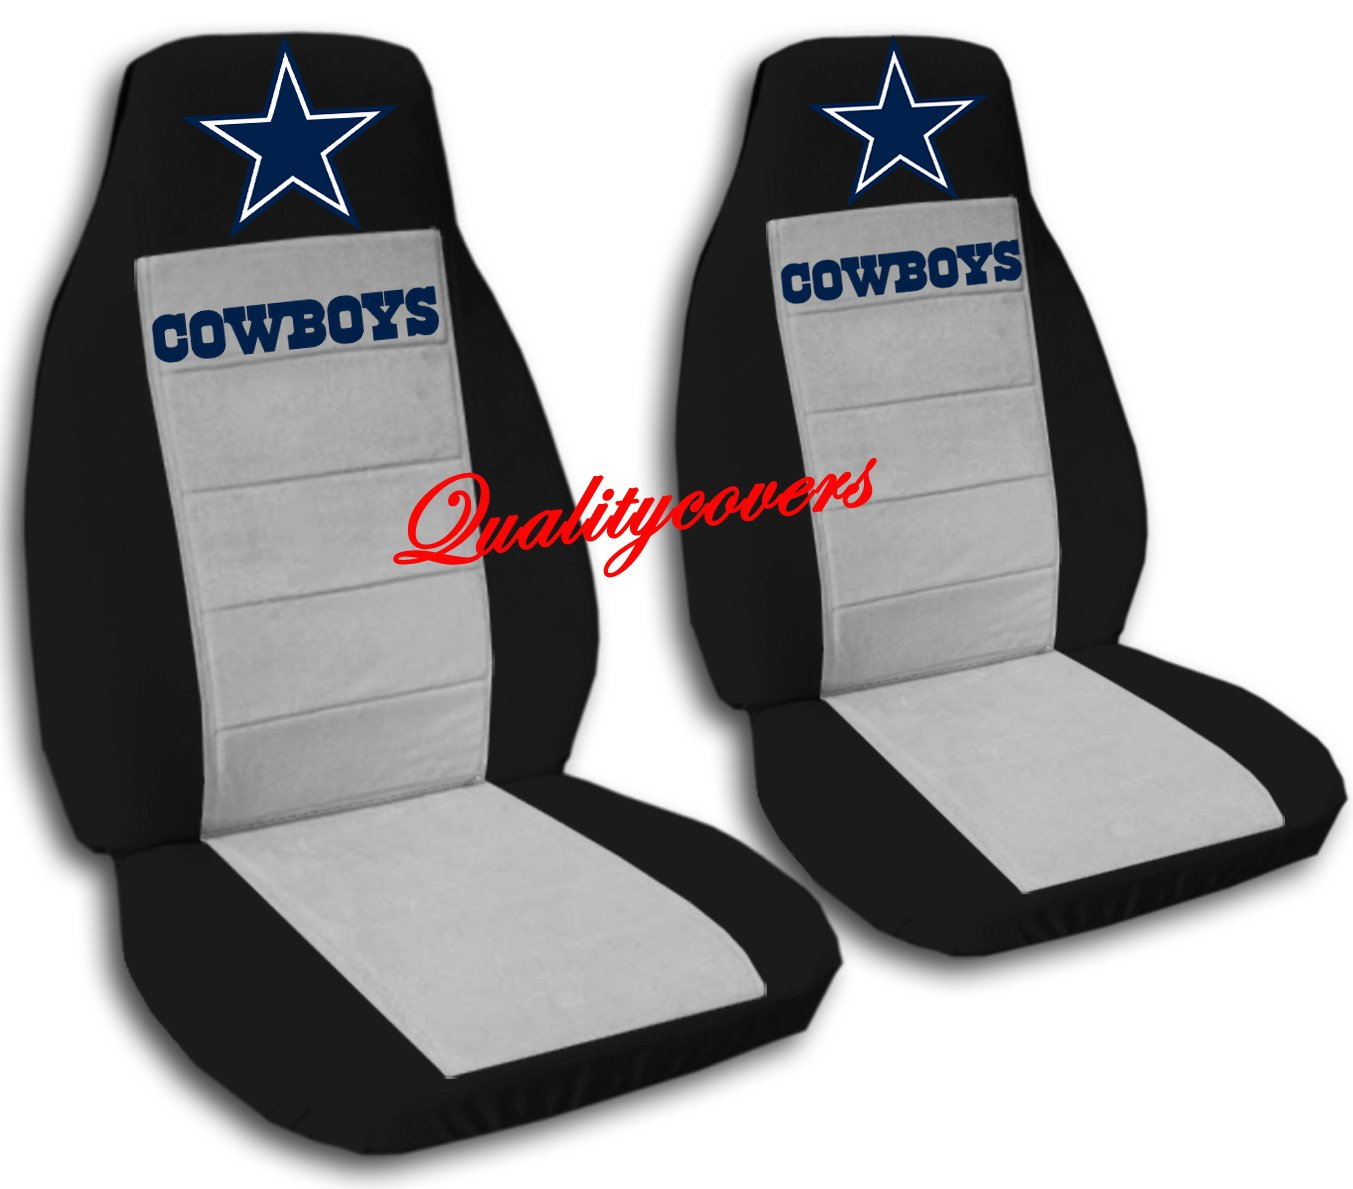 2 Black and Silver Cowboy Seat Covers 2006 Mitsubishi Montero Side Airbag Friendly by Designcovers (Image #1)